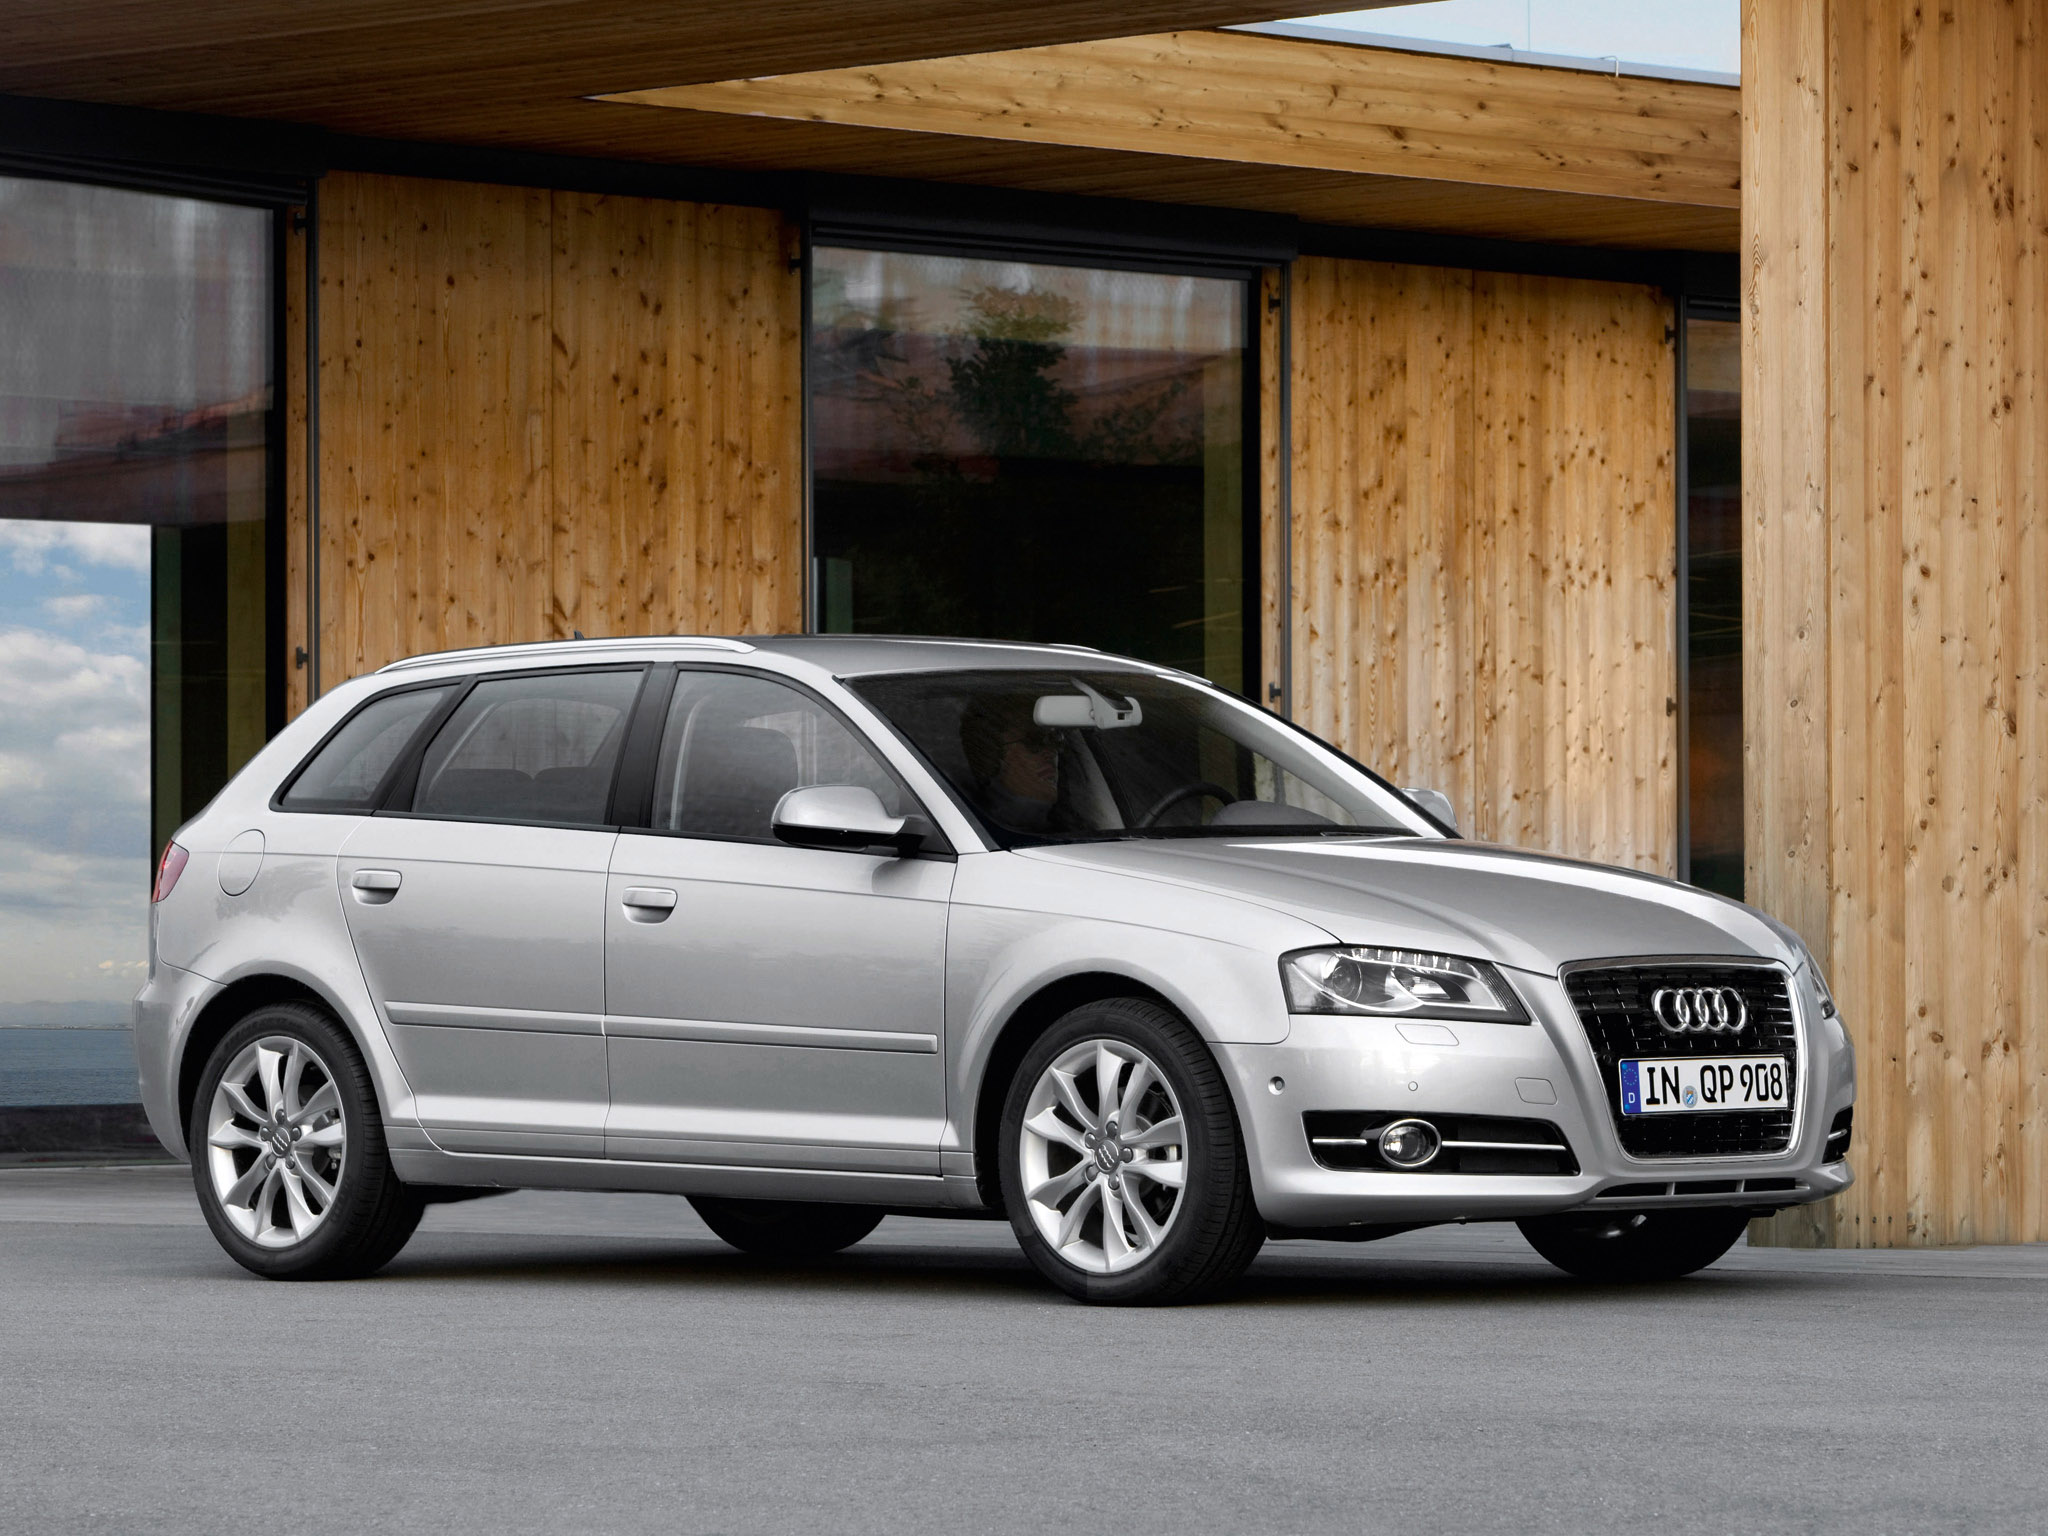 audi a3 sportback 8pa 2010 audi a3 sportback 8pa 2010 photo 13 car in pictures car photo gallery. Black Bedroom Furniture Sets. Home Design Ideas